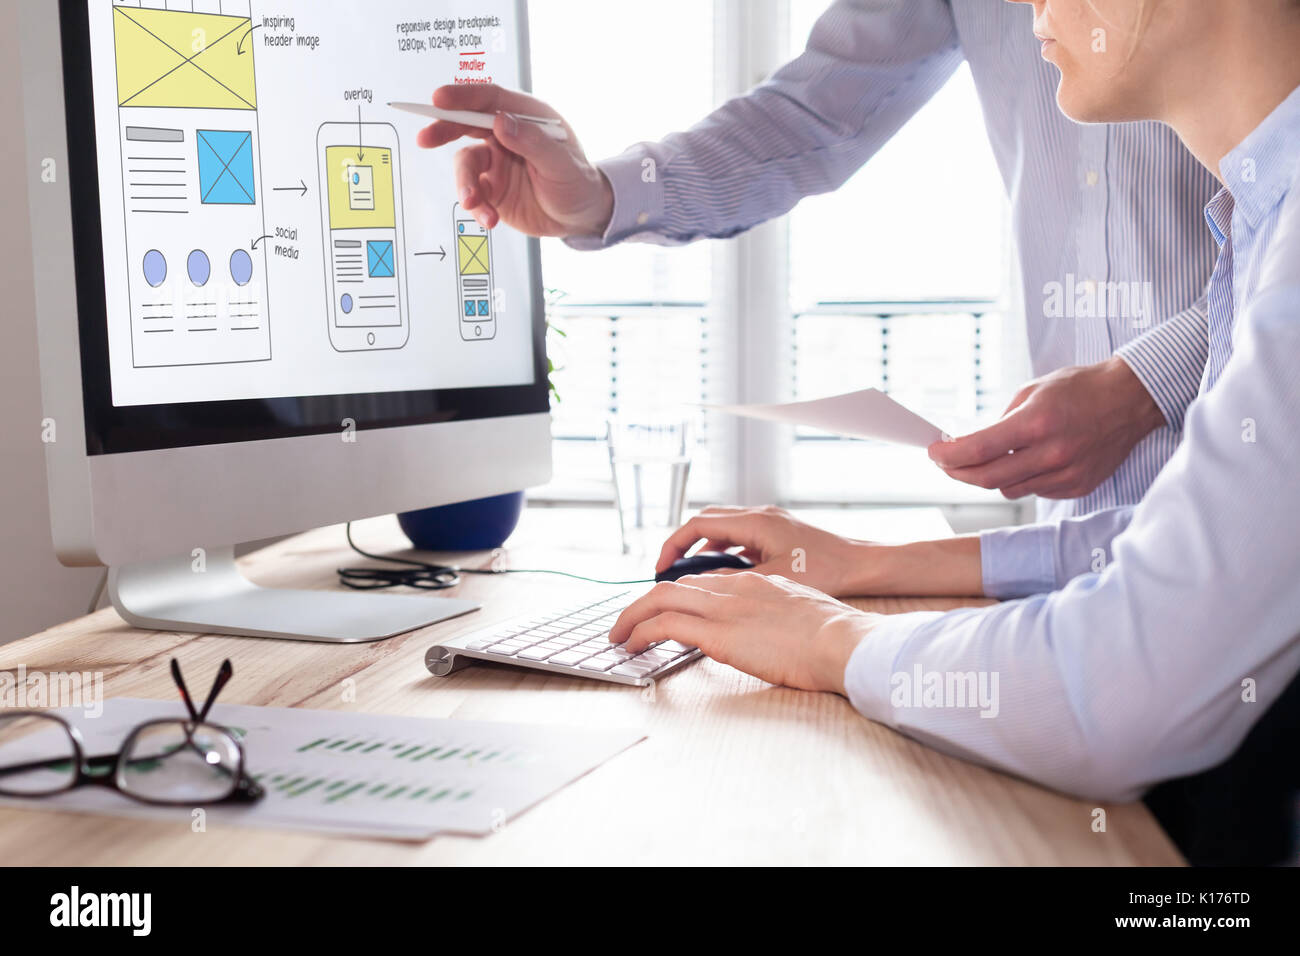 Website development team sketching wireframe layout design for responsive web content, two UI/UX front end designers in office - Stock Image